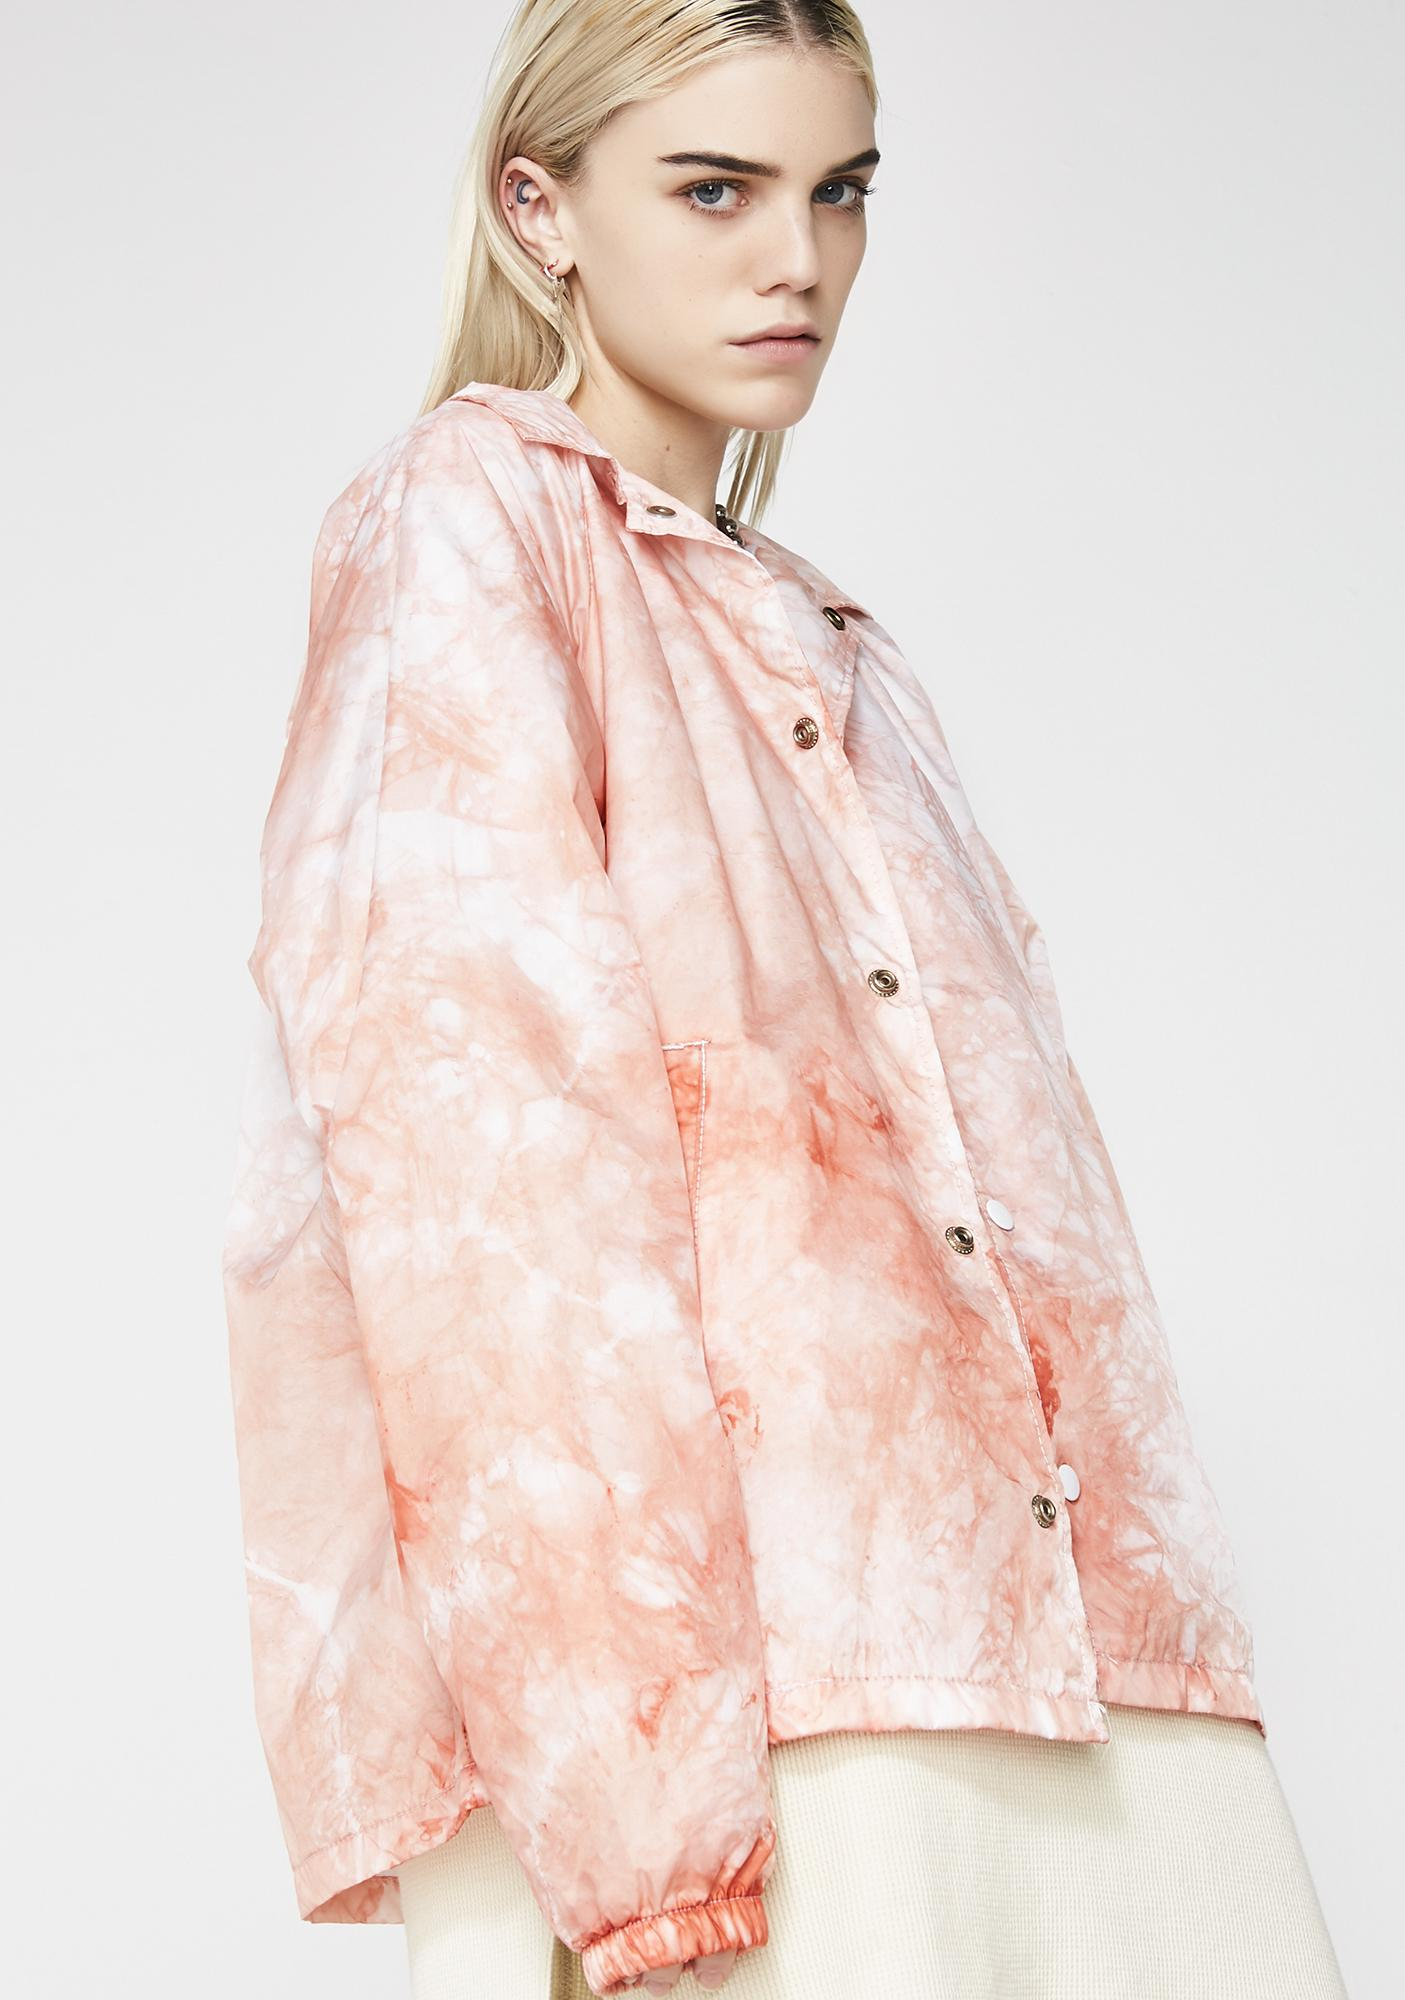 Rebel8 Blush Jacket